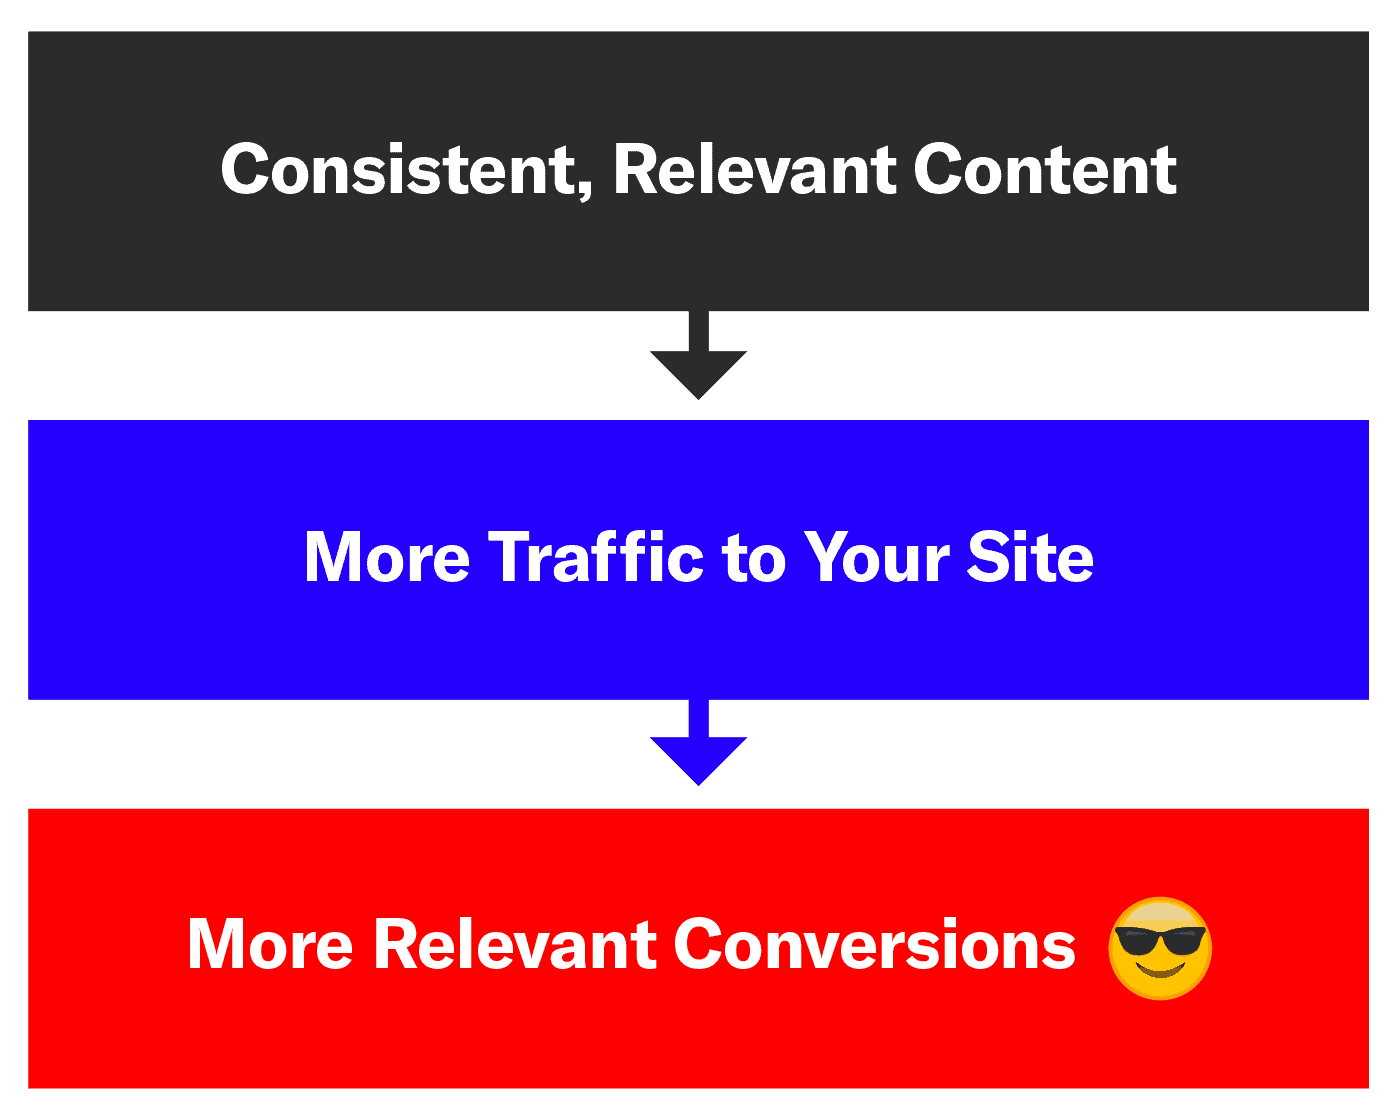 graphic showing how content drives traffic and conversions